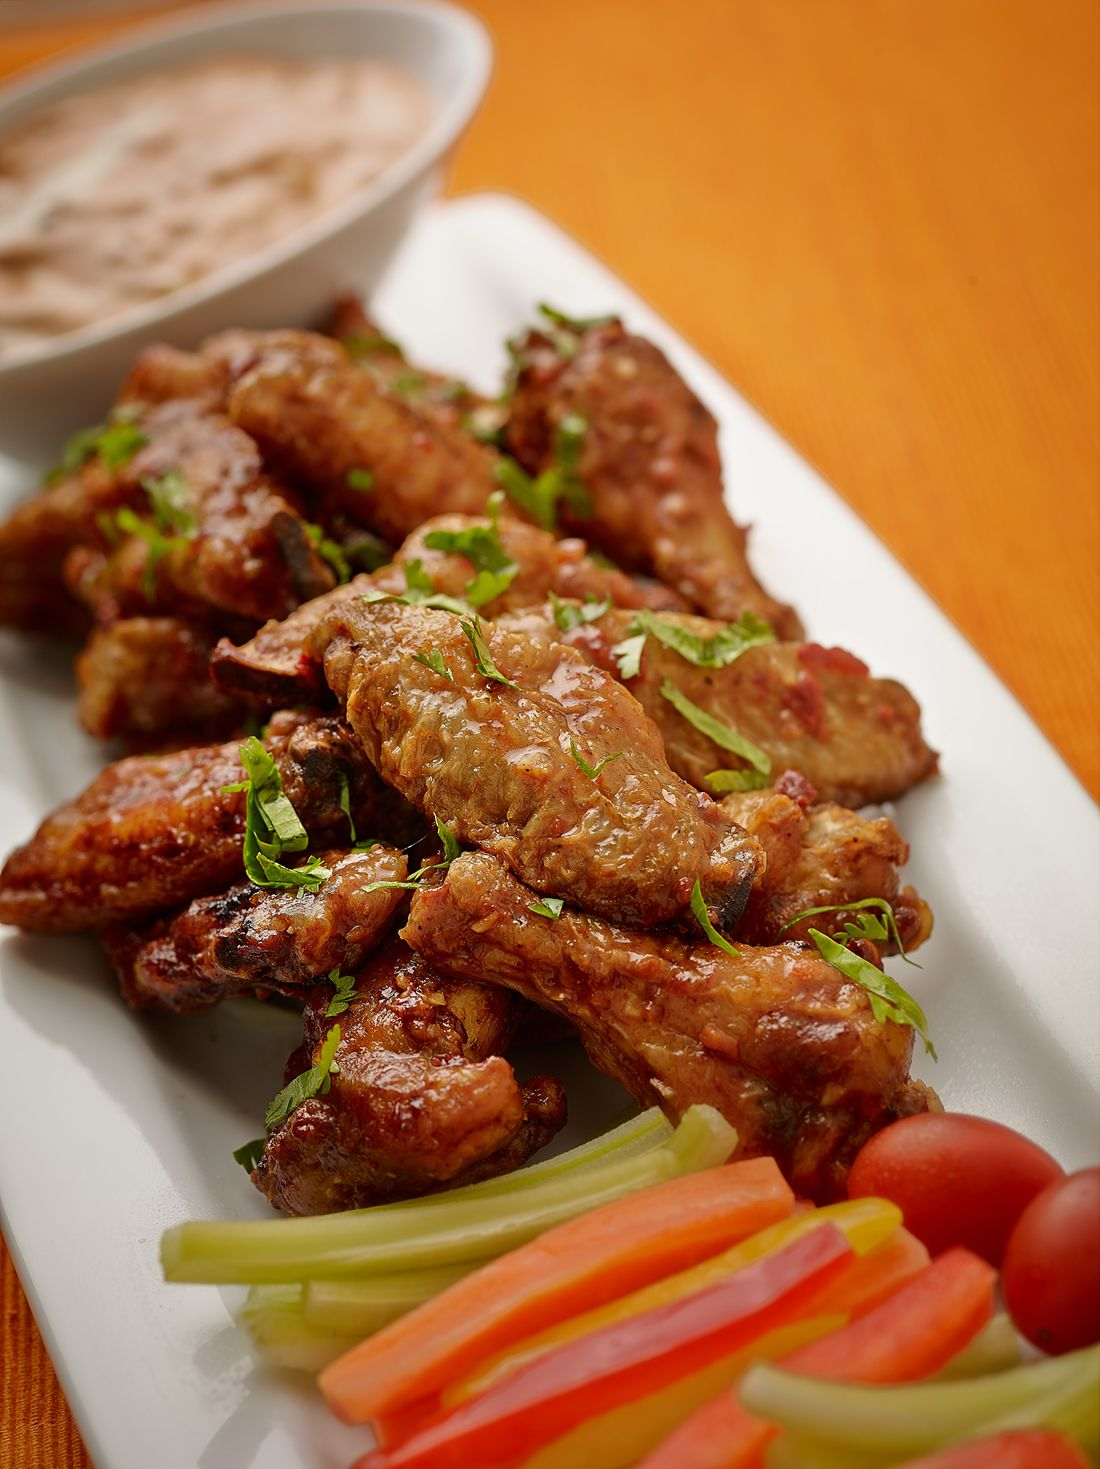 Recipes Super Bowl Party Chicken Wings Chipotle Sour Cream Recipe Chicken Wing Recipes